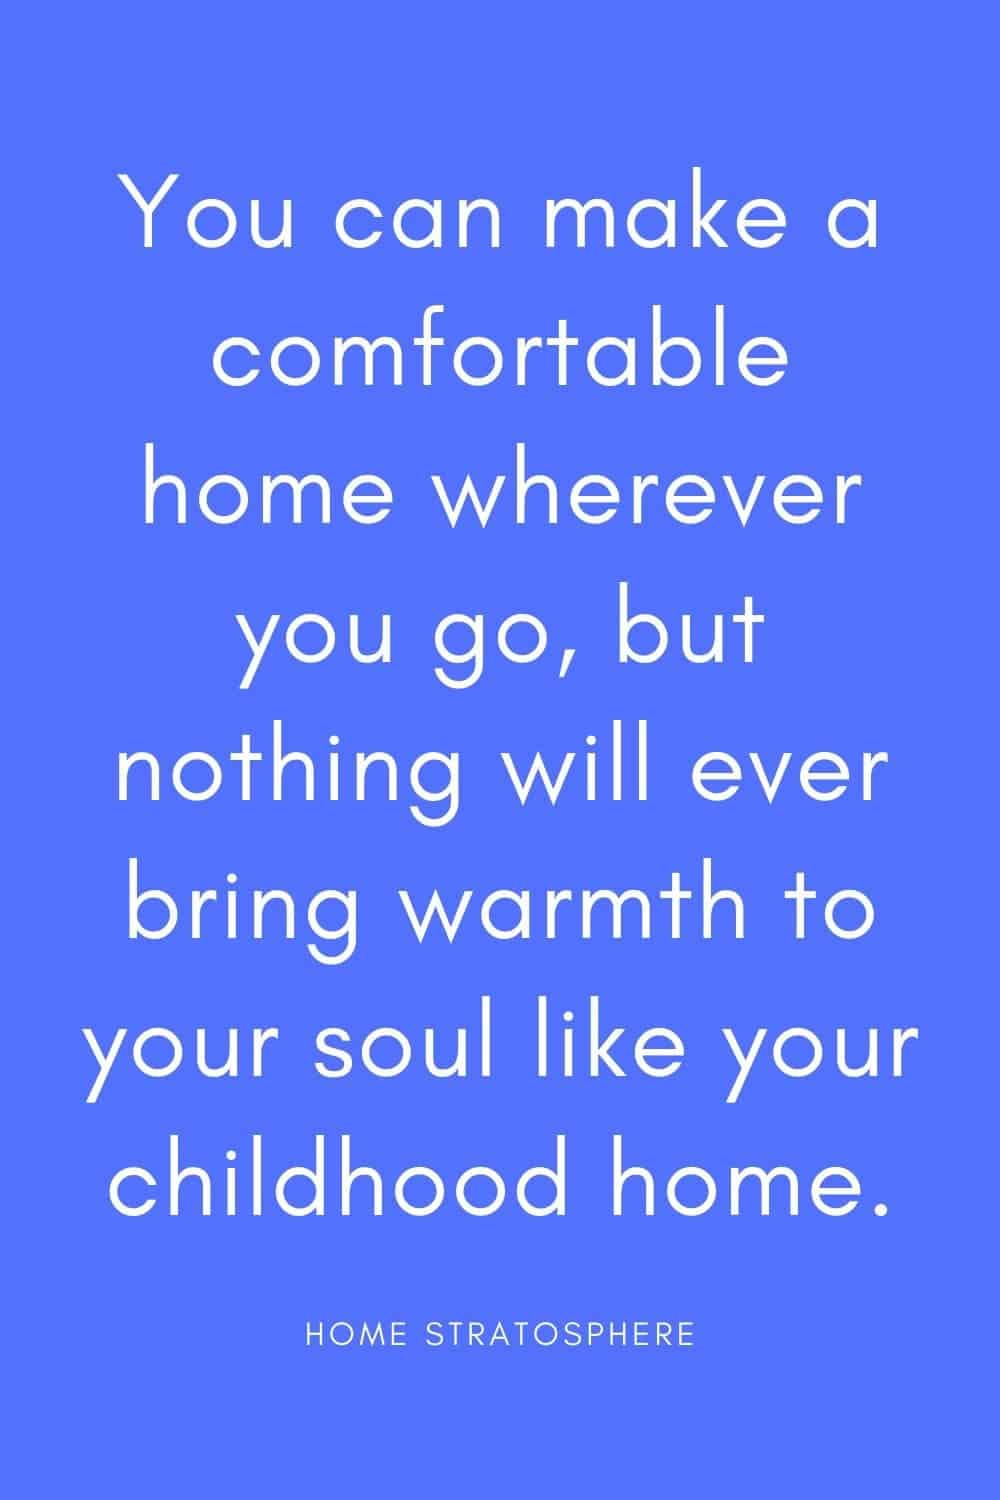 """You can make a comfortable home wherever you go, but nothing will ever bring warmth to your soul like your childhood home."""